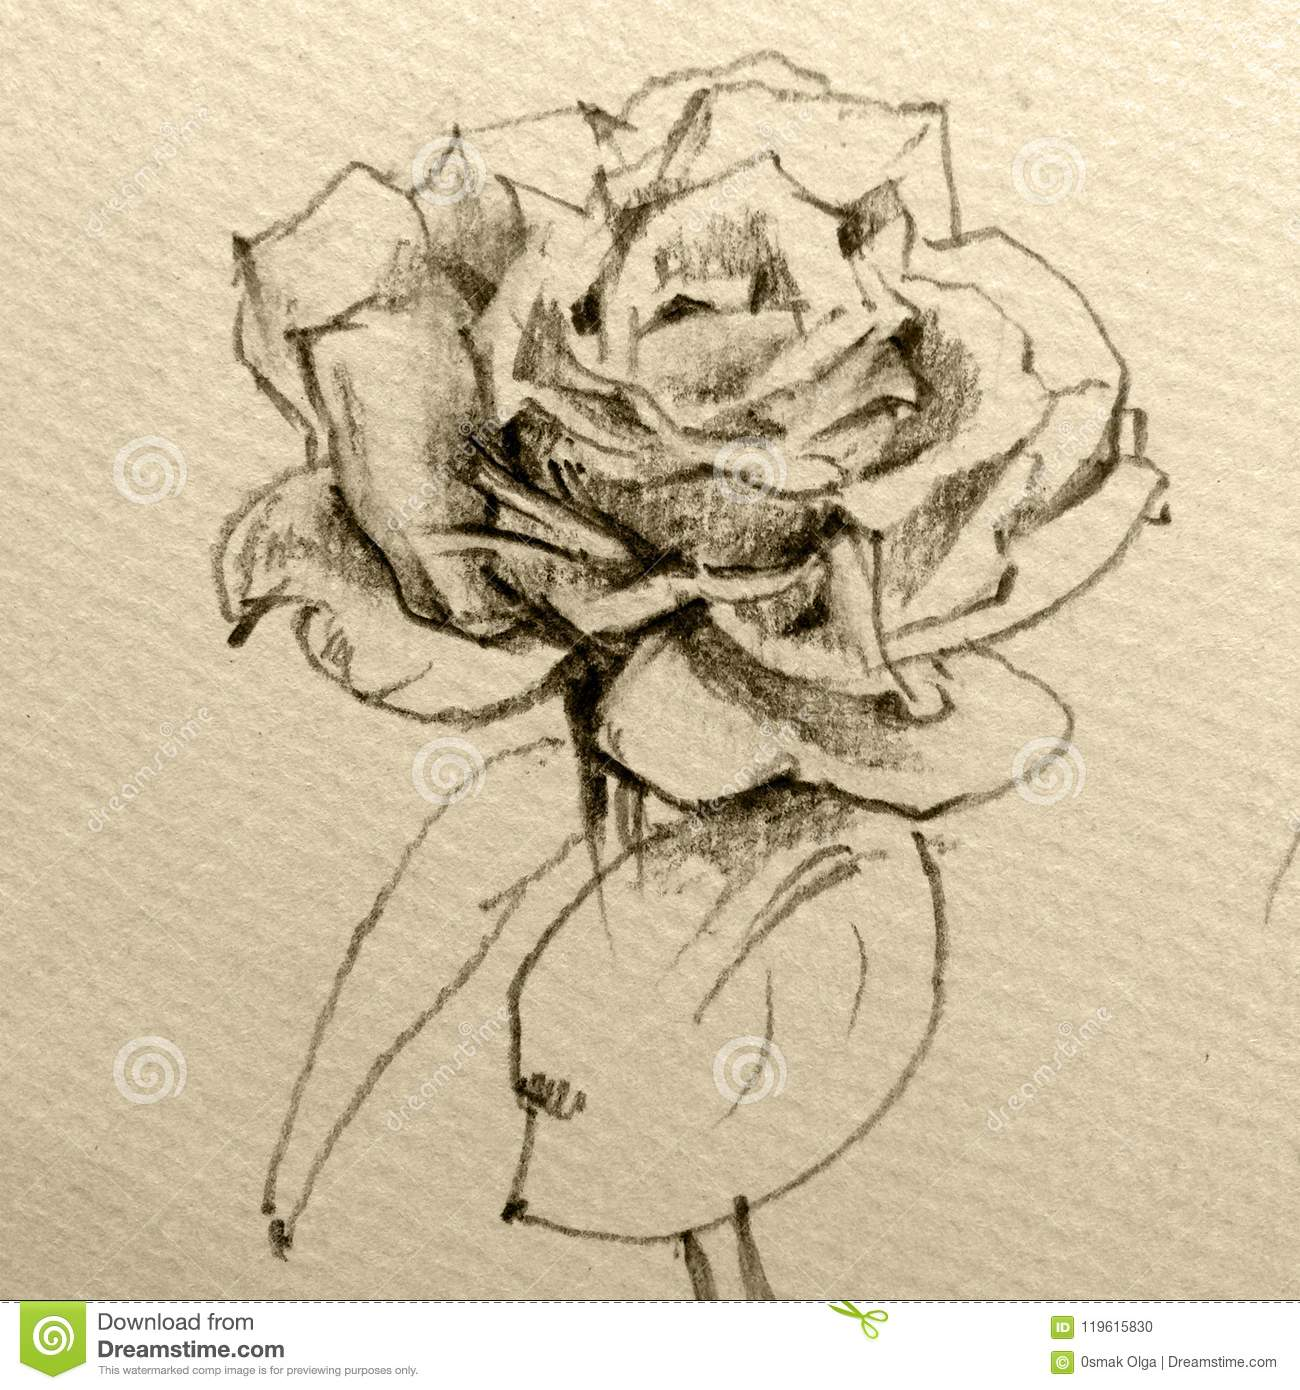 Abstract decorative background floral pattern handmade beautiful tender romantic spring rose flower made in the technique pencil drawing from nature